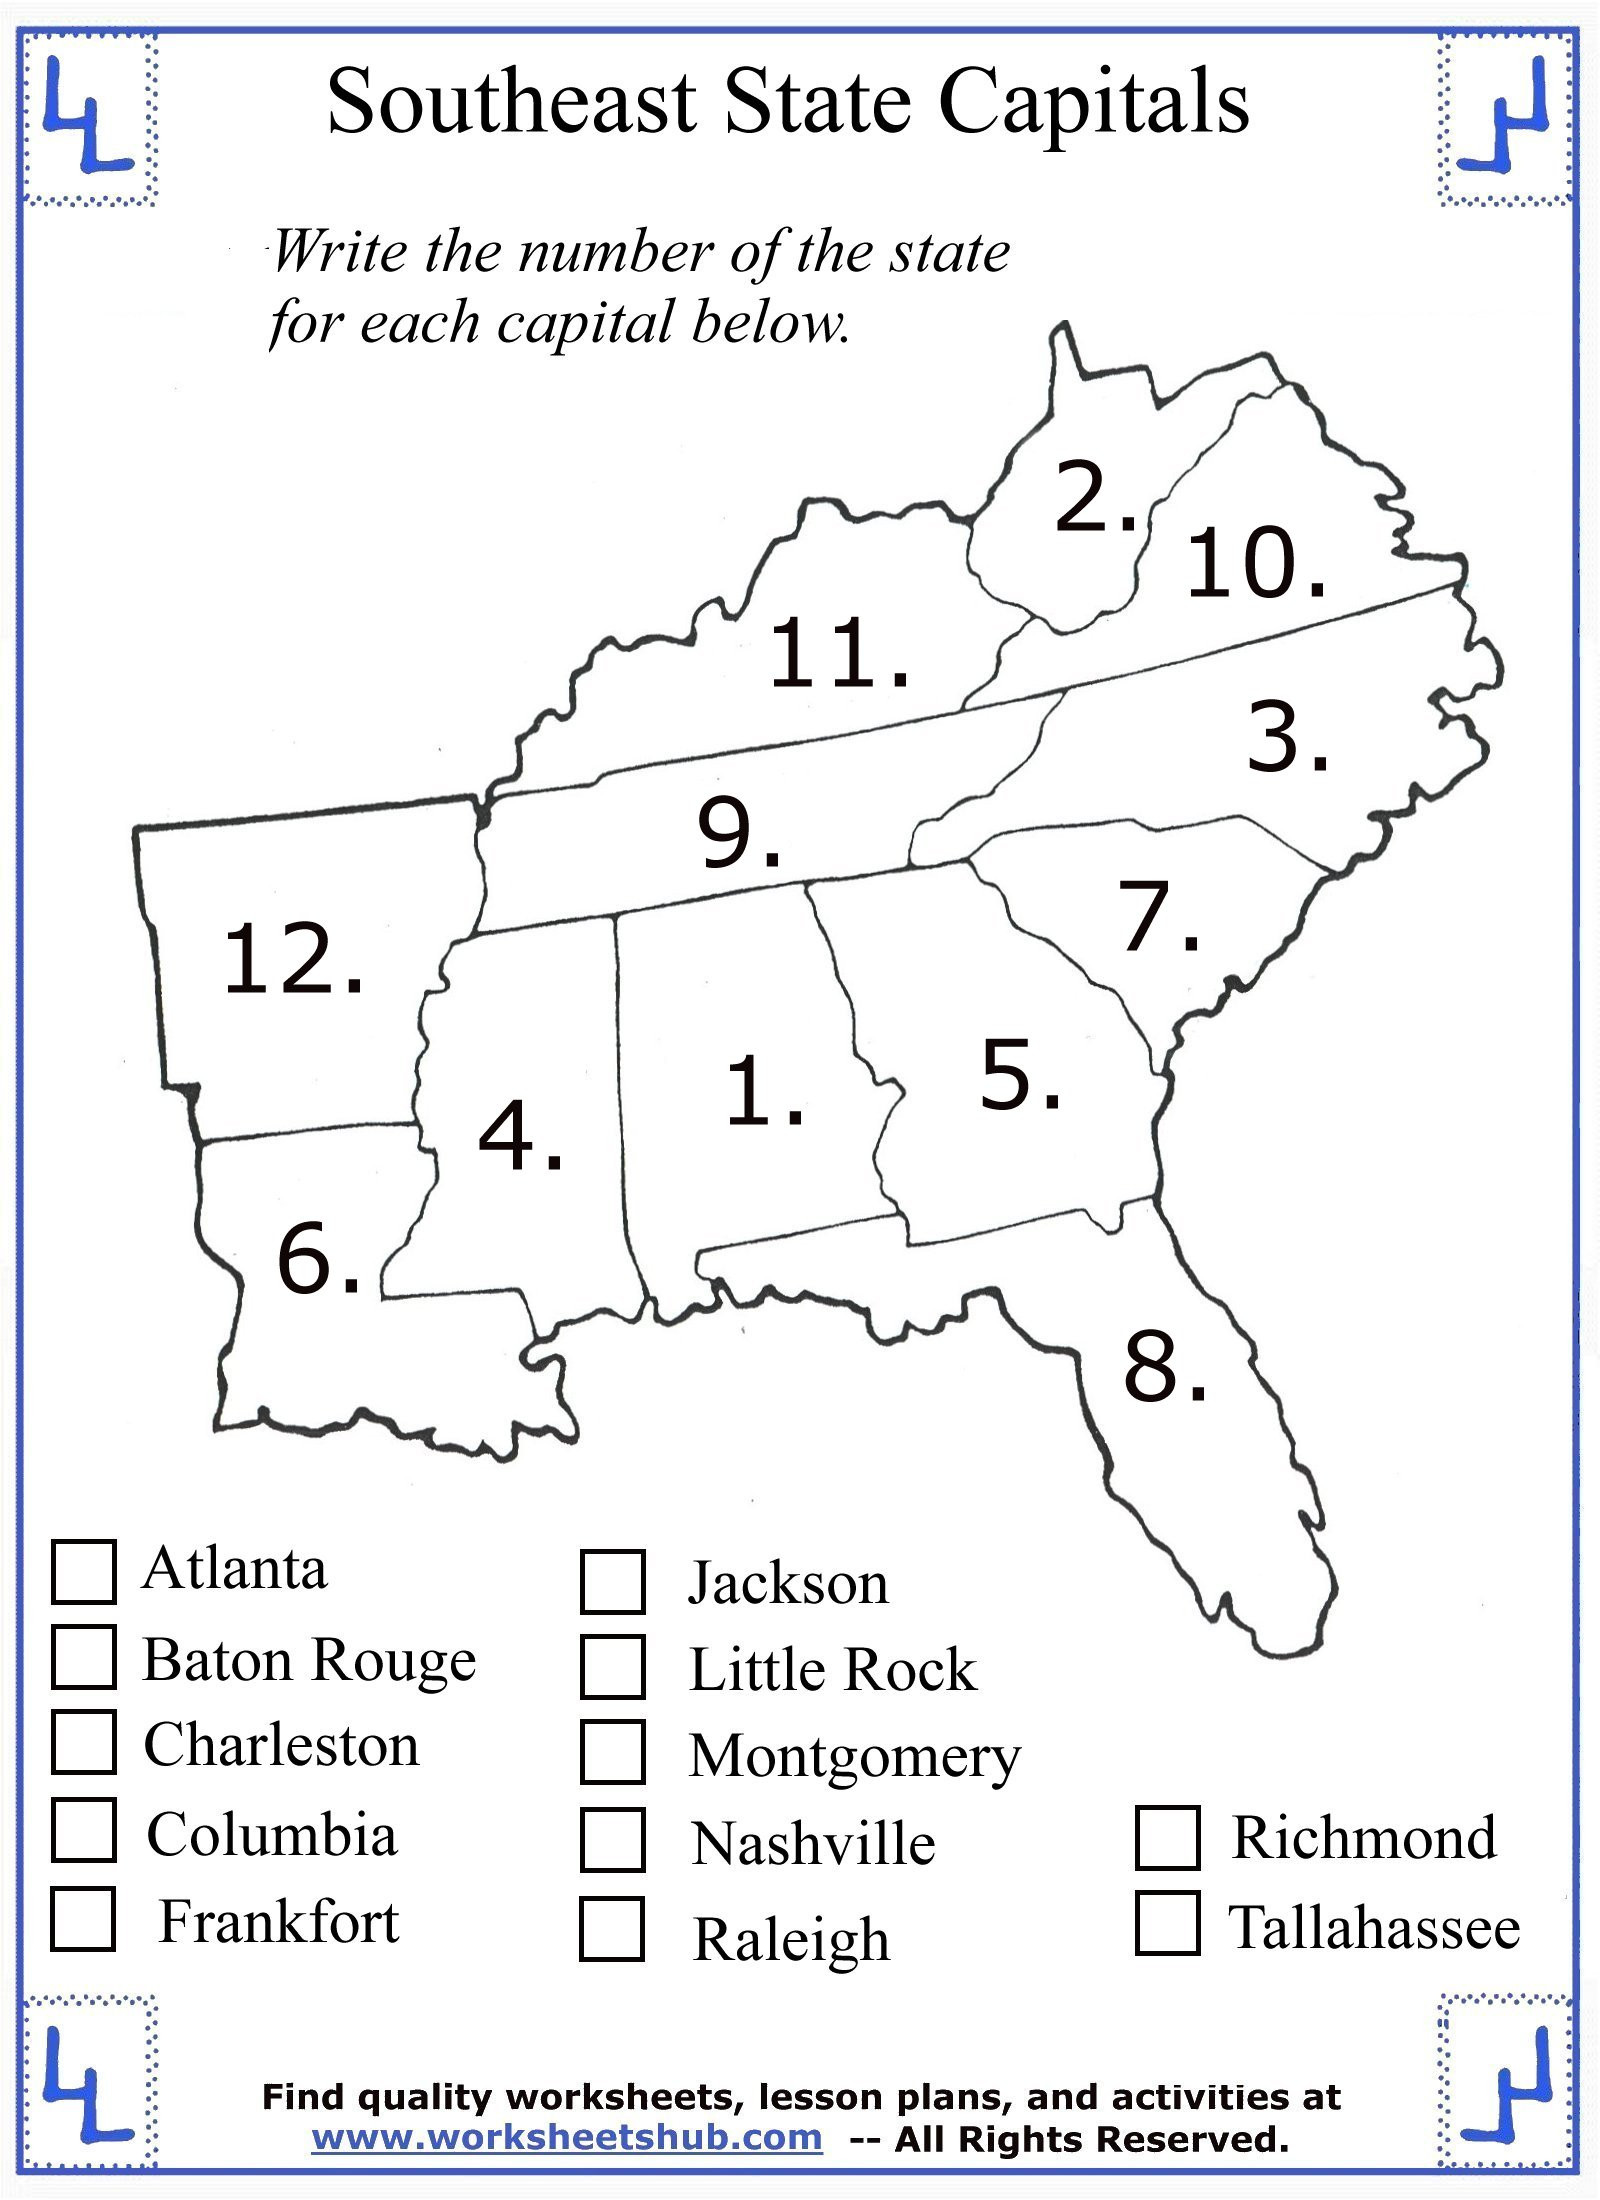 2nd Grade social Studies Worksheet 4th Grade social Stu S southeast Region States